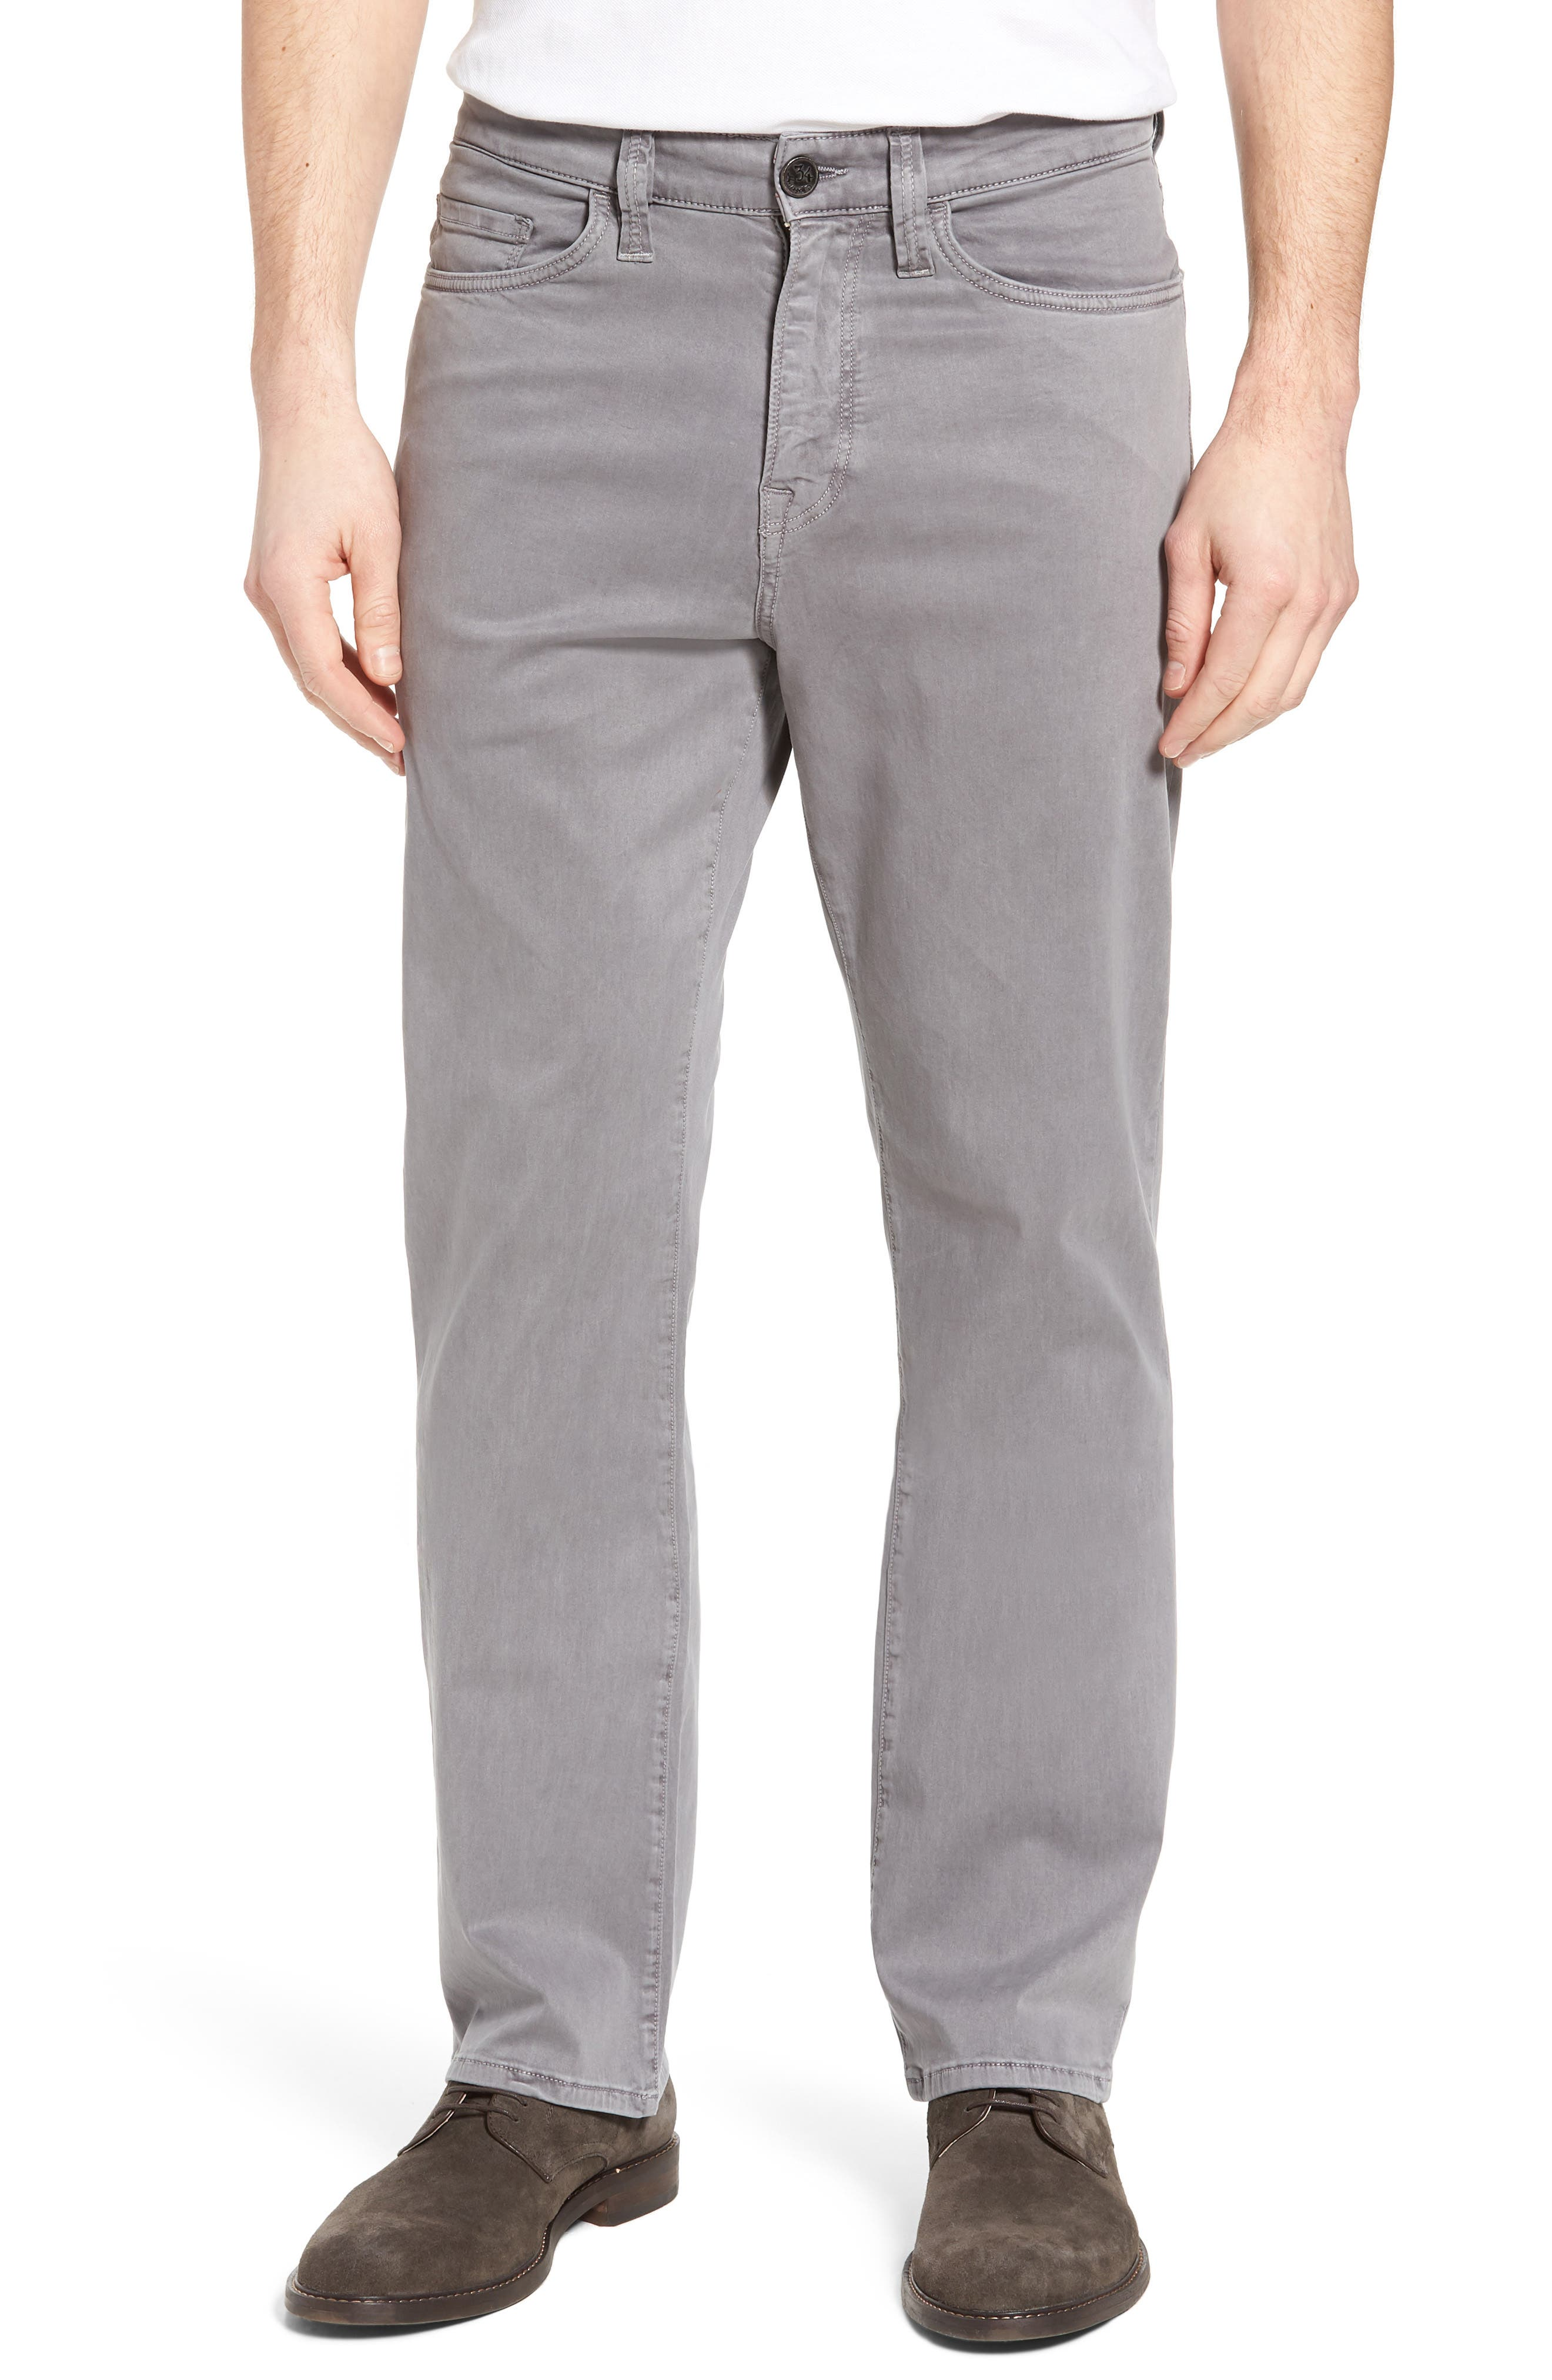 Charisma Relaxed Fit Twill Pants,                             Main thumbnail 1, color,                             Shark Twill